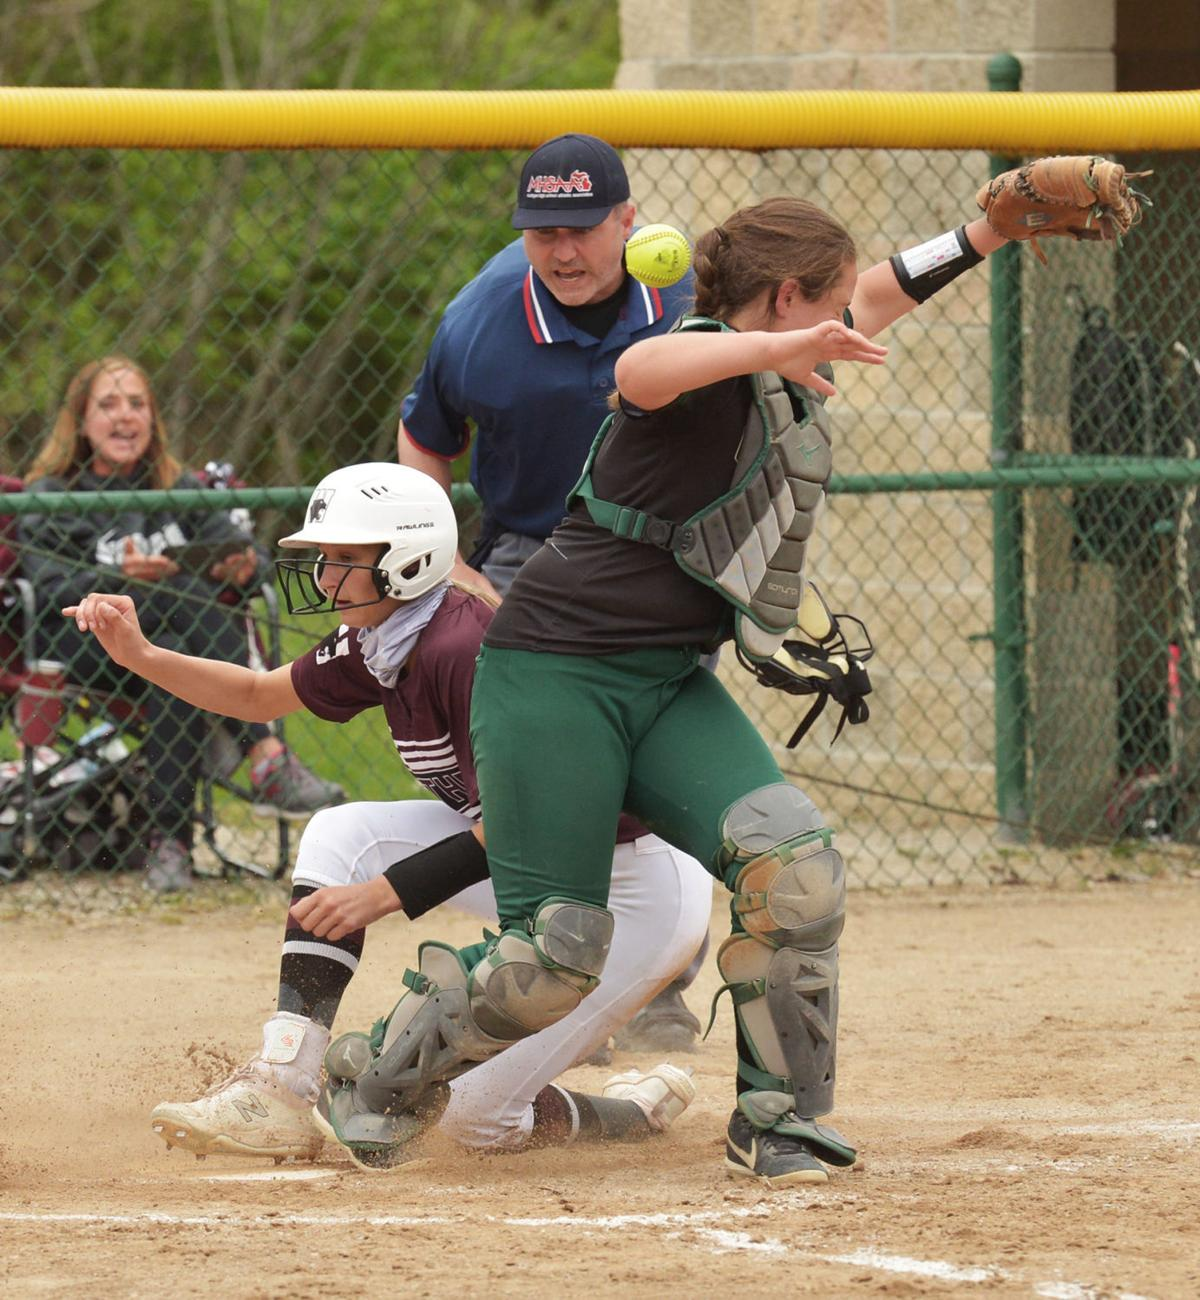 210504-HP-coloma-water-softball3847-photo.jpg